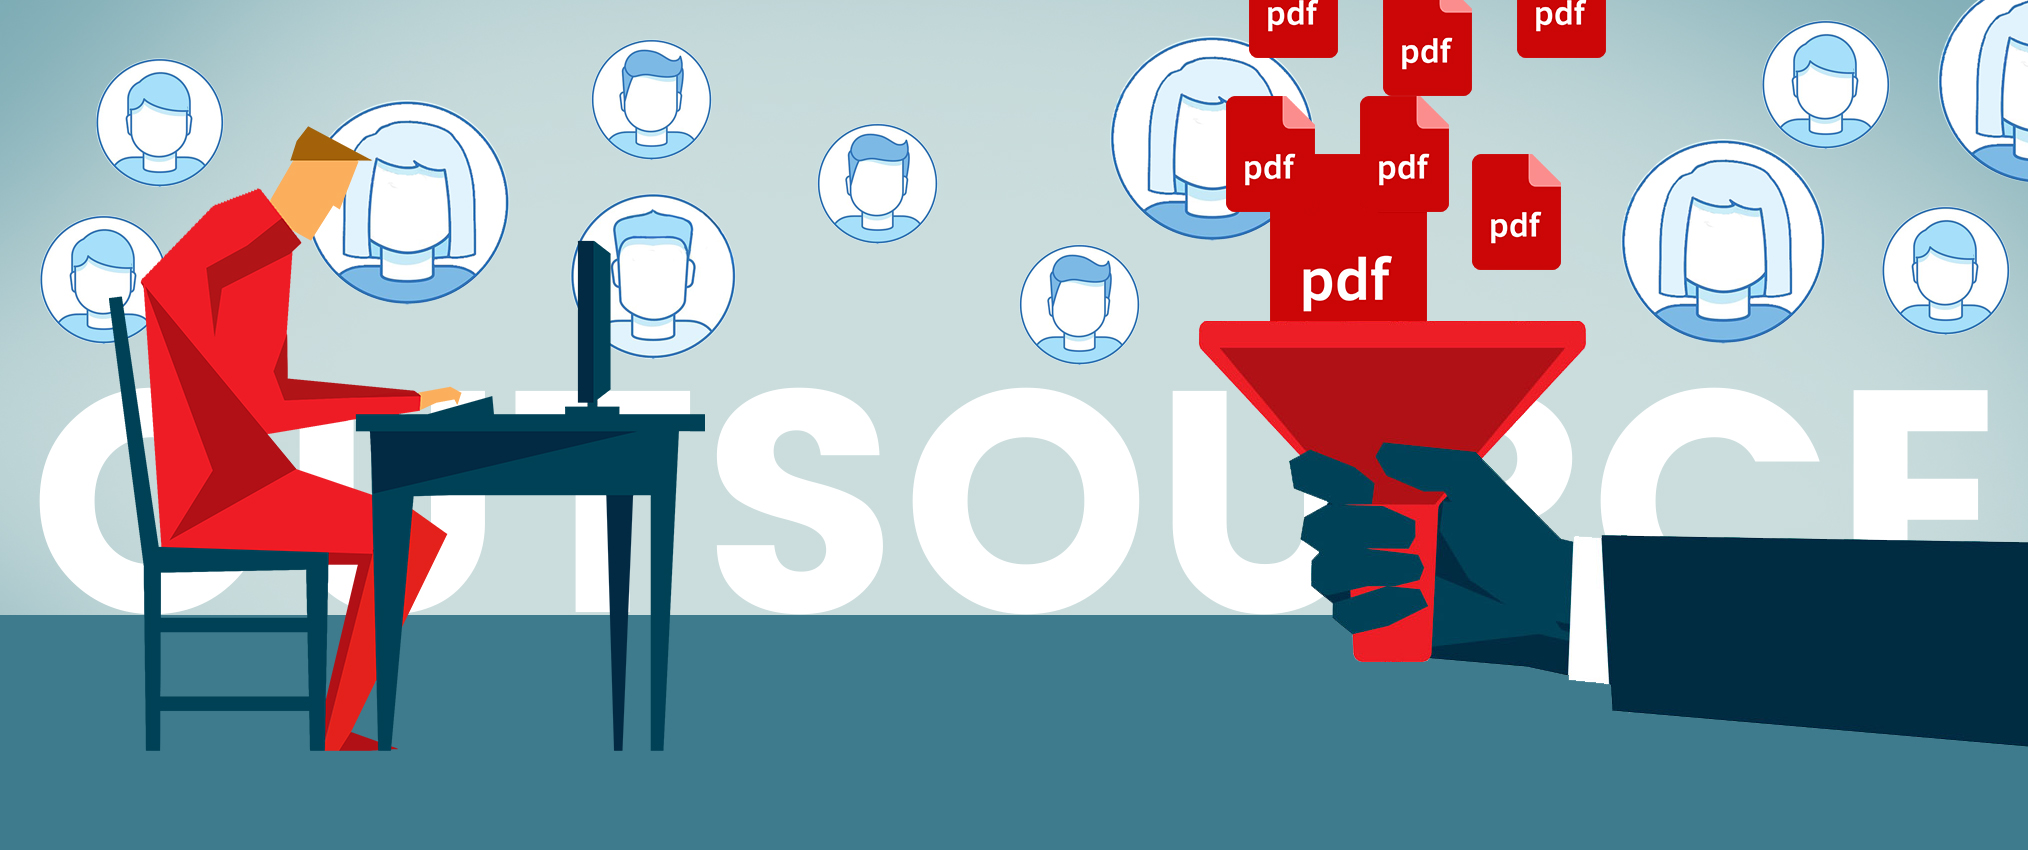 necessity-of-outsourcing-pdf-conversion-in-us-business-main